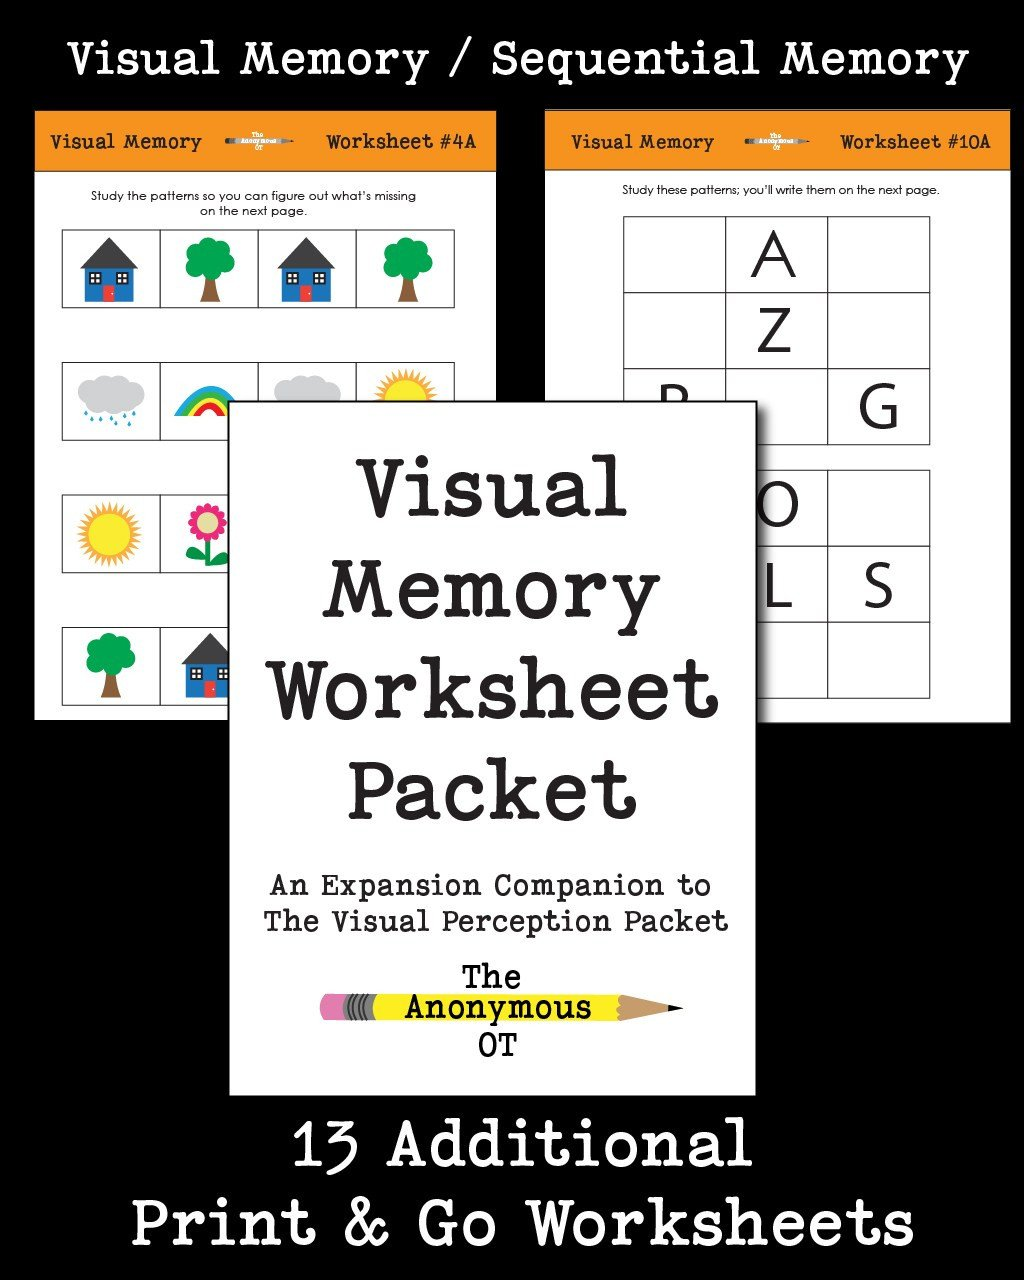 Visual Memory Worksheet Packet